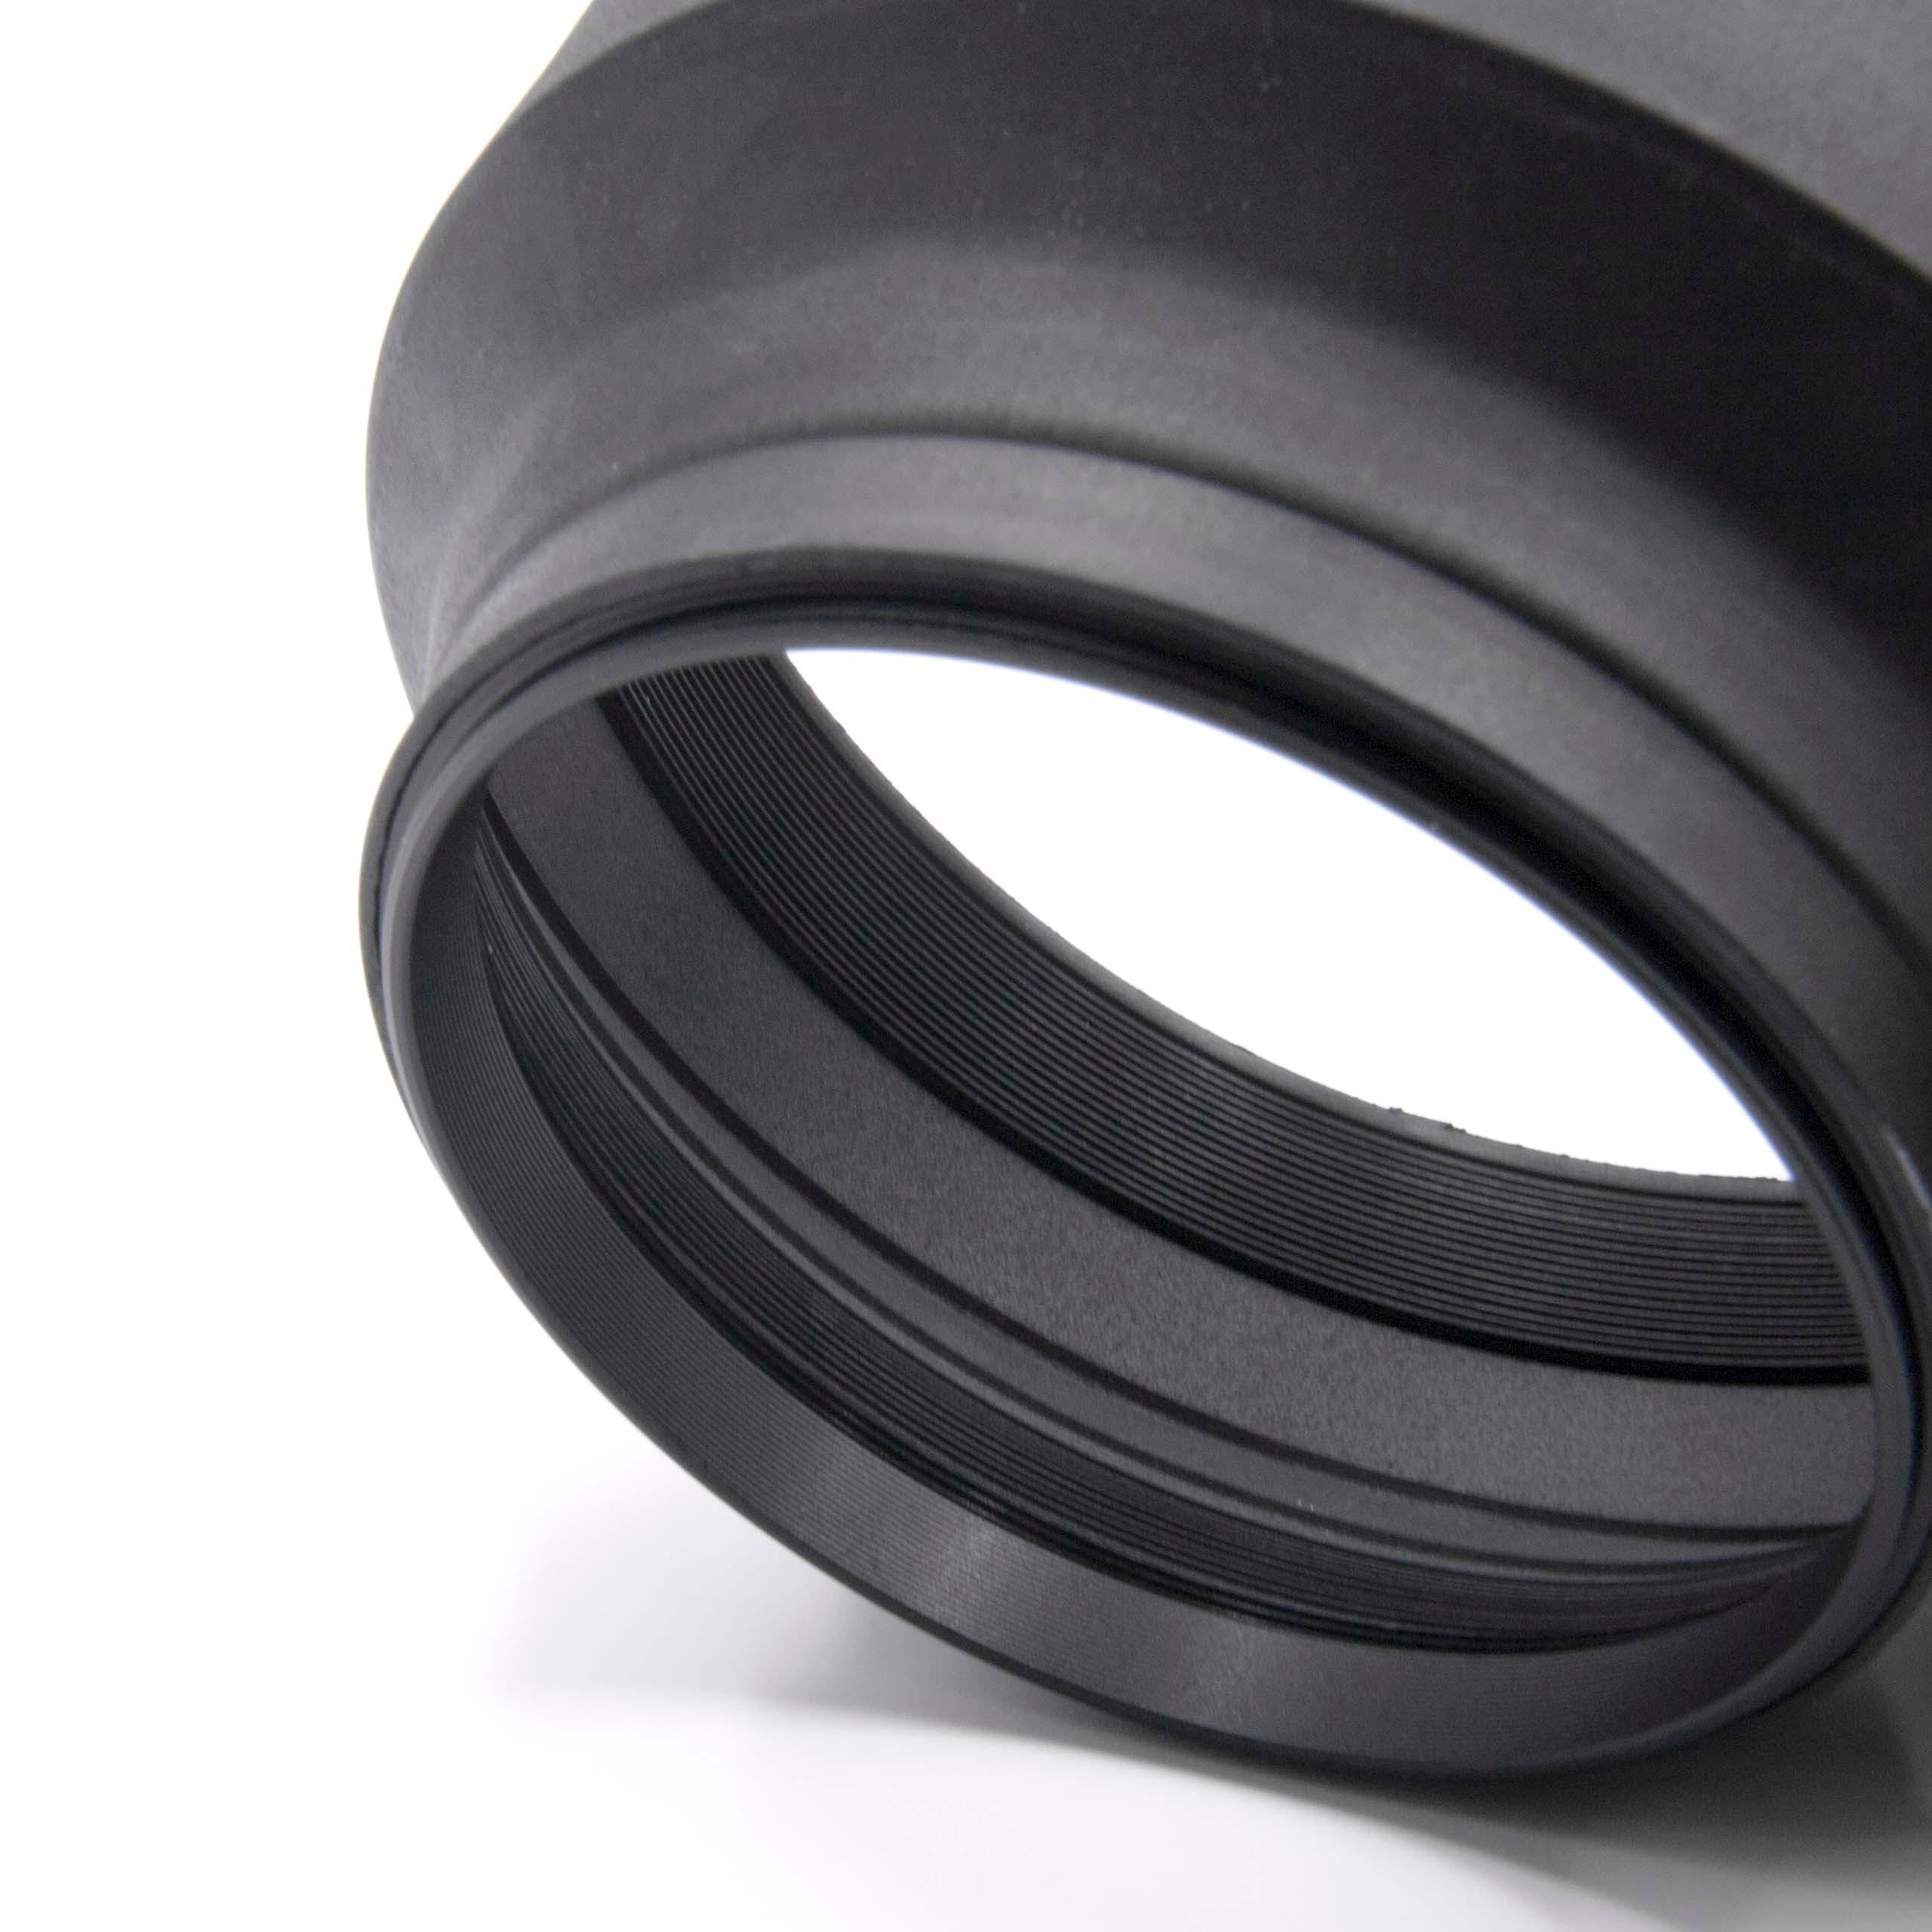 LENS HOOD RUBBER 77mm black for Pentax smc DA 12-24 mm 4.0 ED AL IF